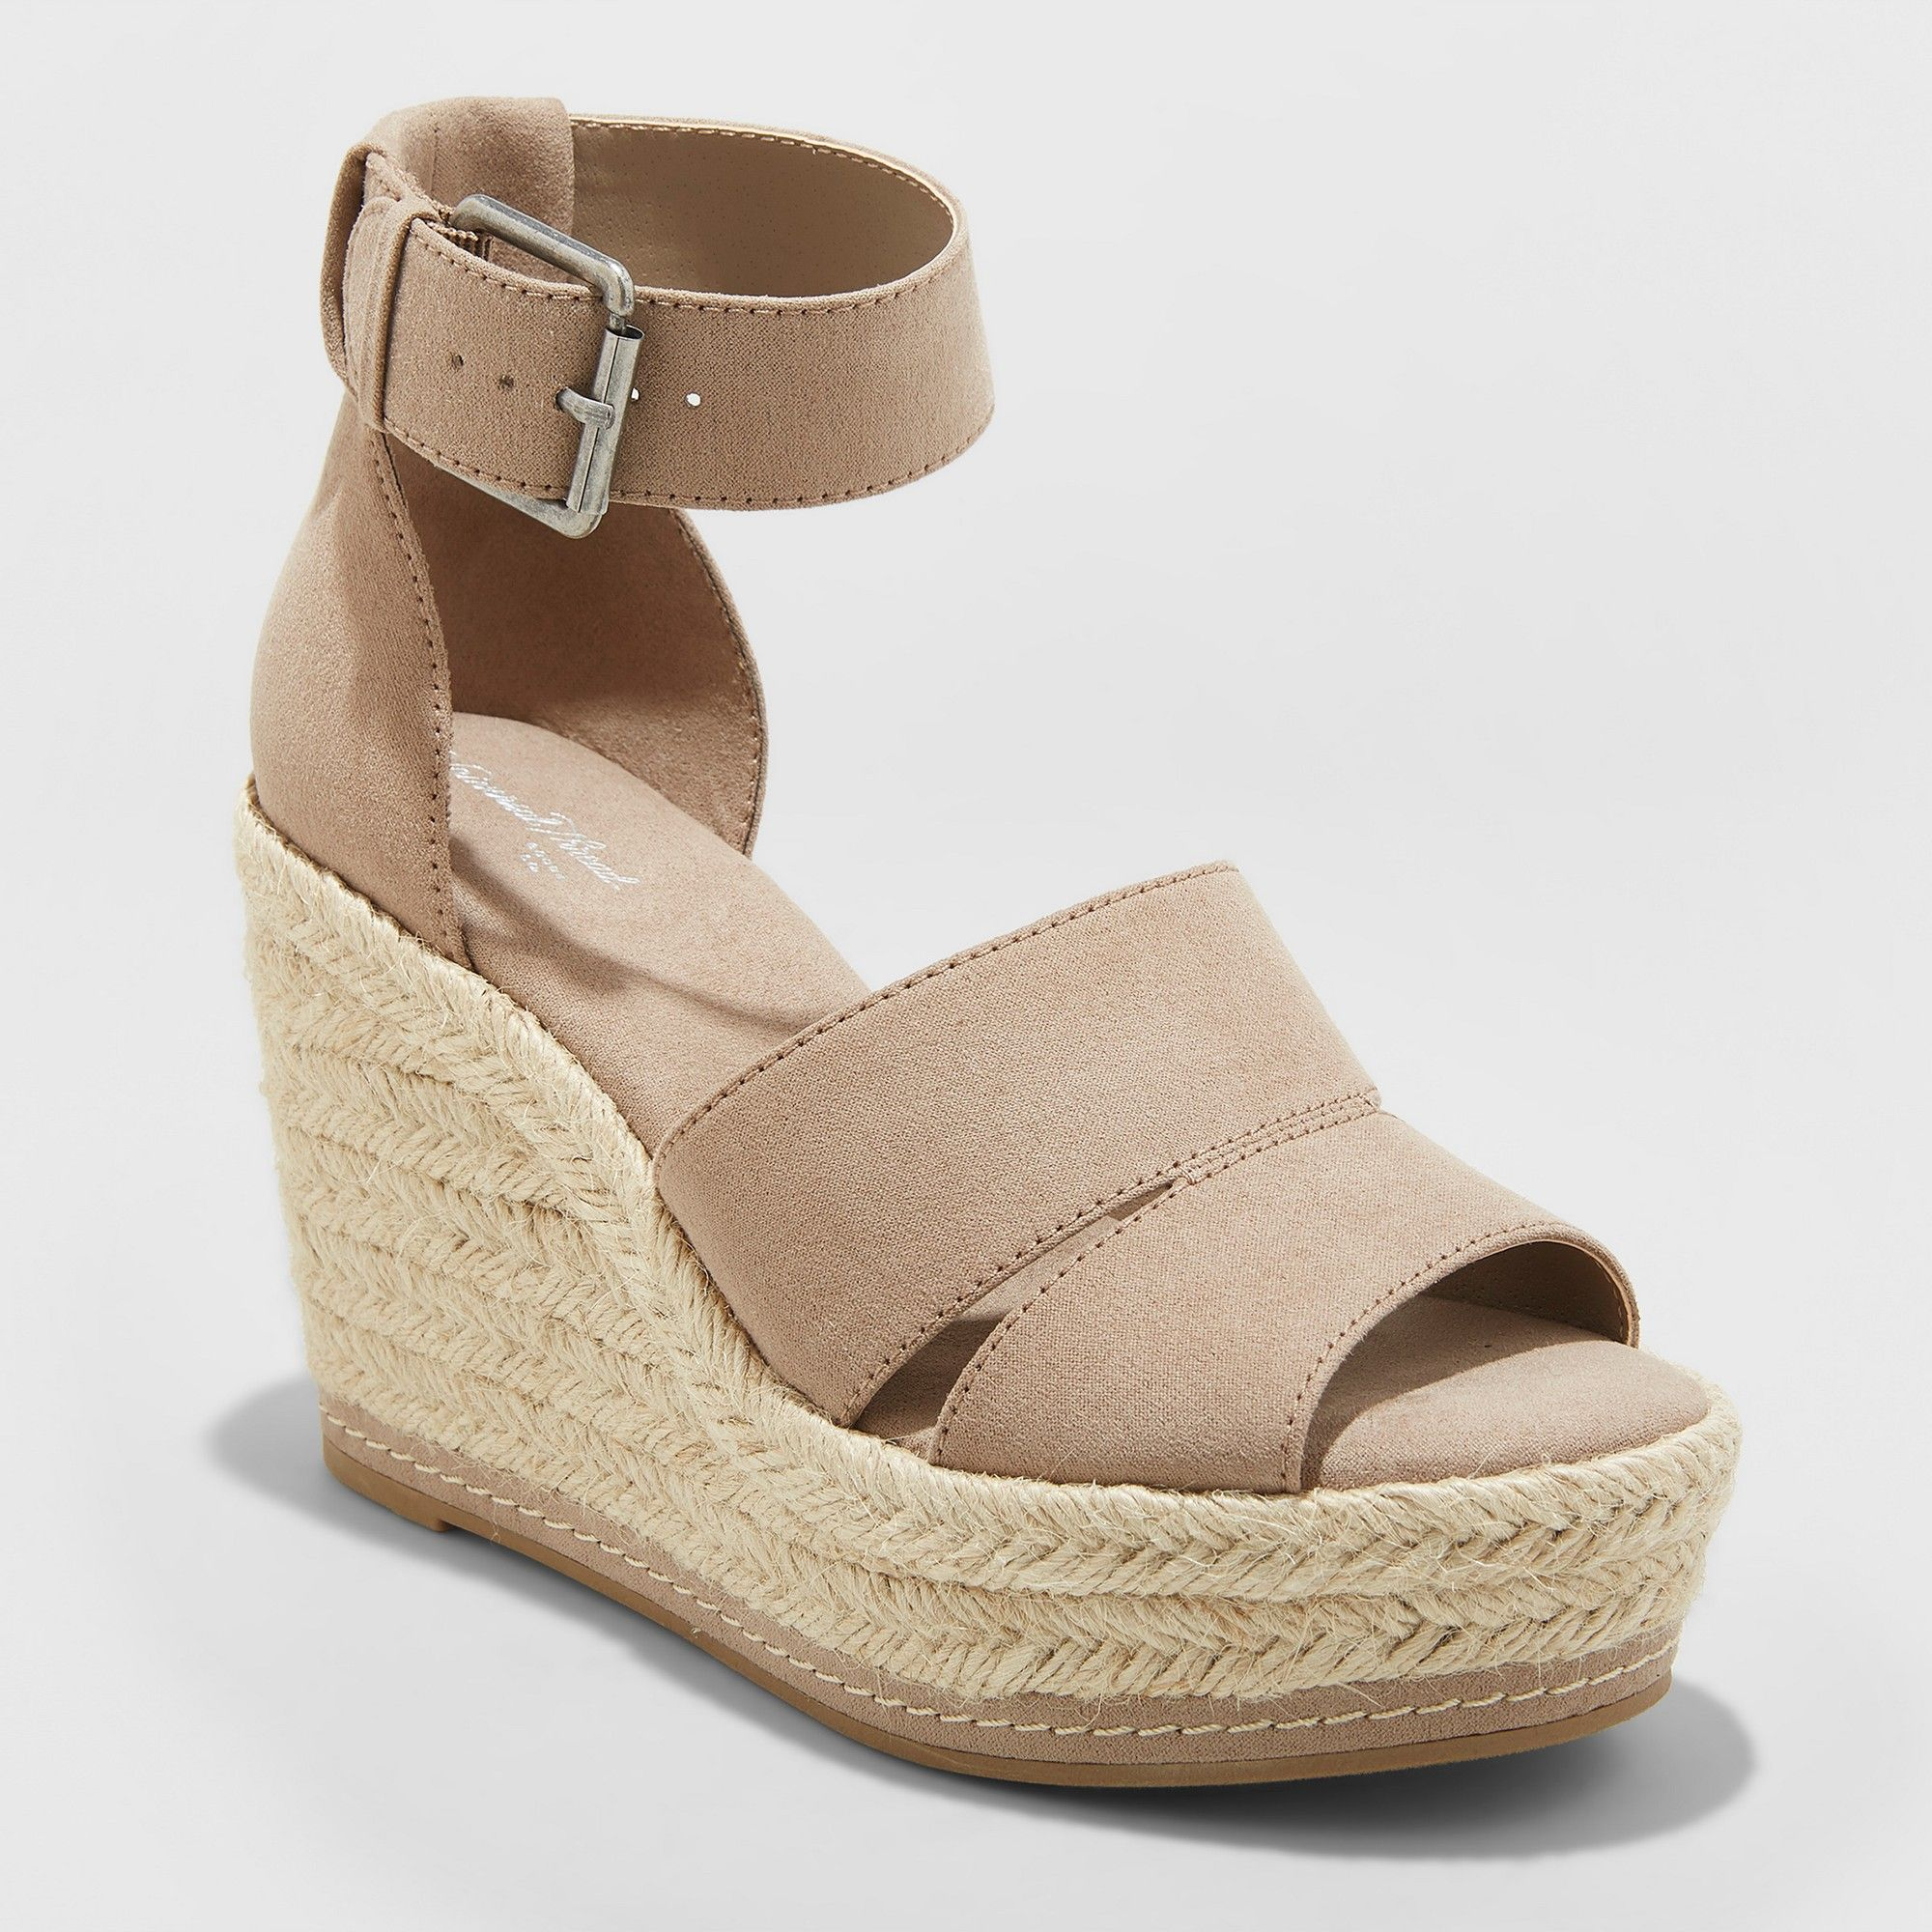 69d665db177 Women s Caroline Wide Width Microsuede Ankle Strap Espadrille Wedge -  Universal Thread Taupe (Brown) 12W